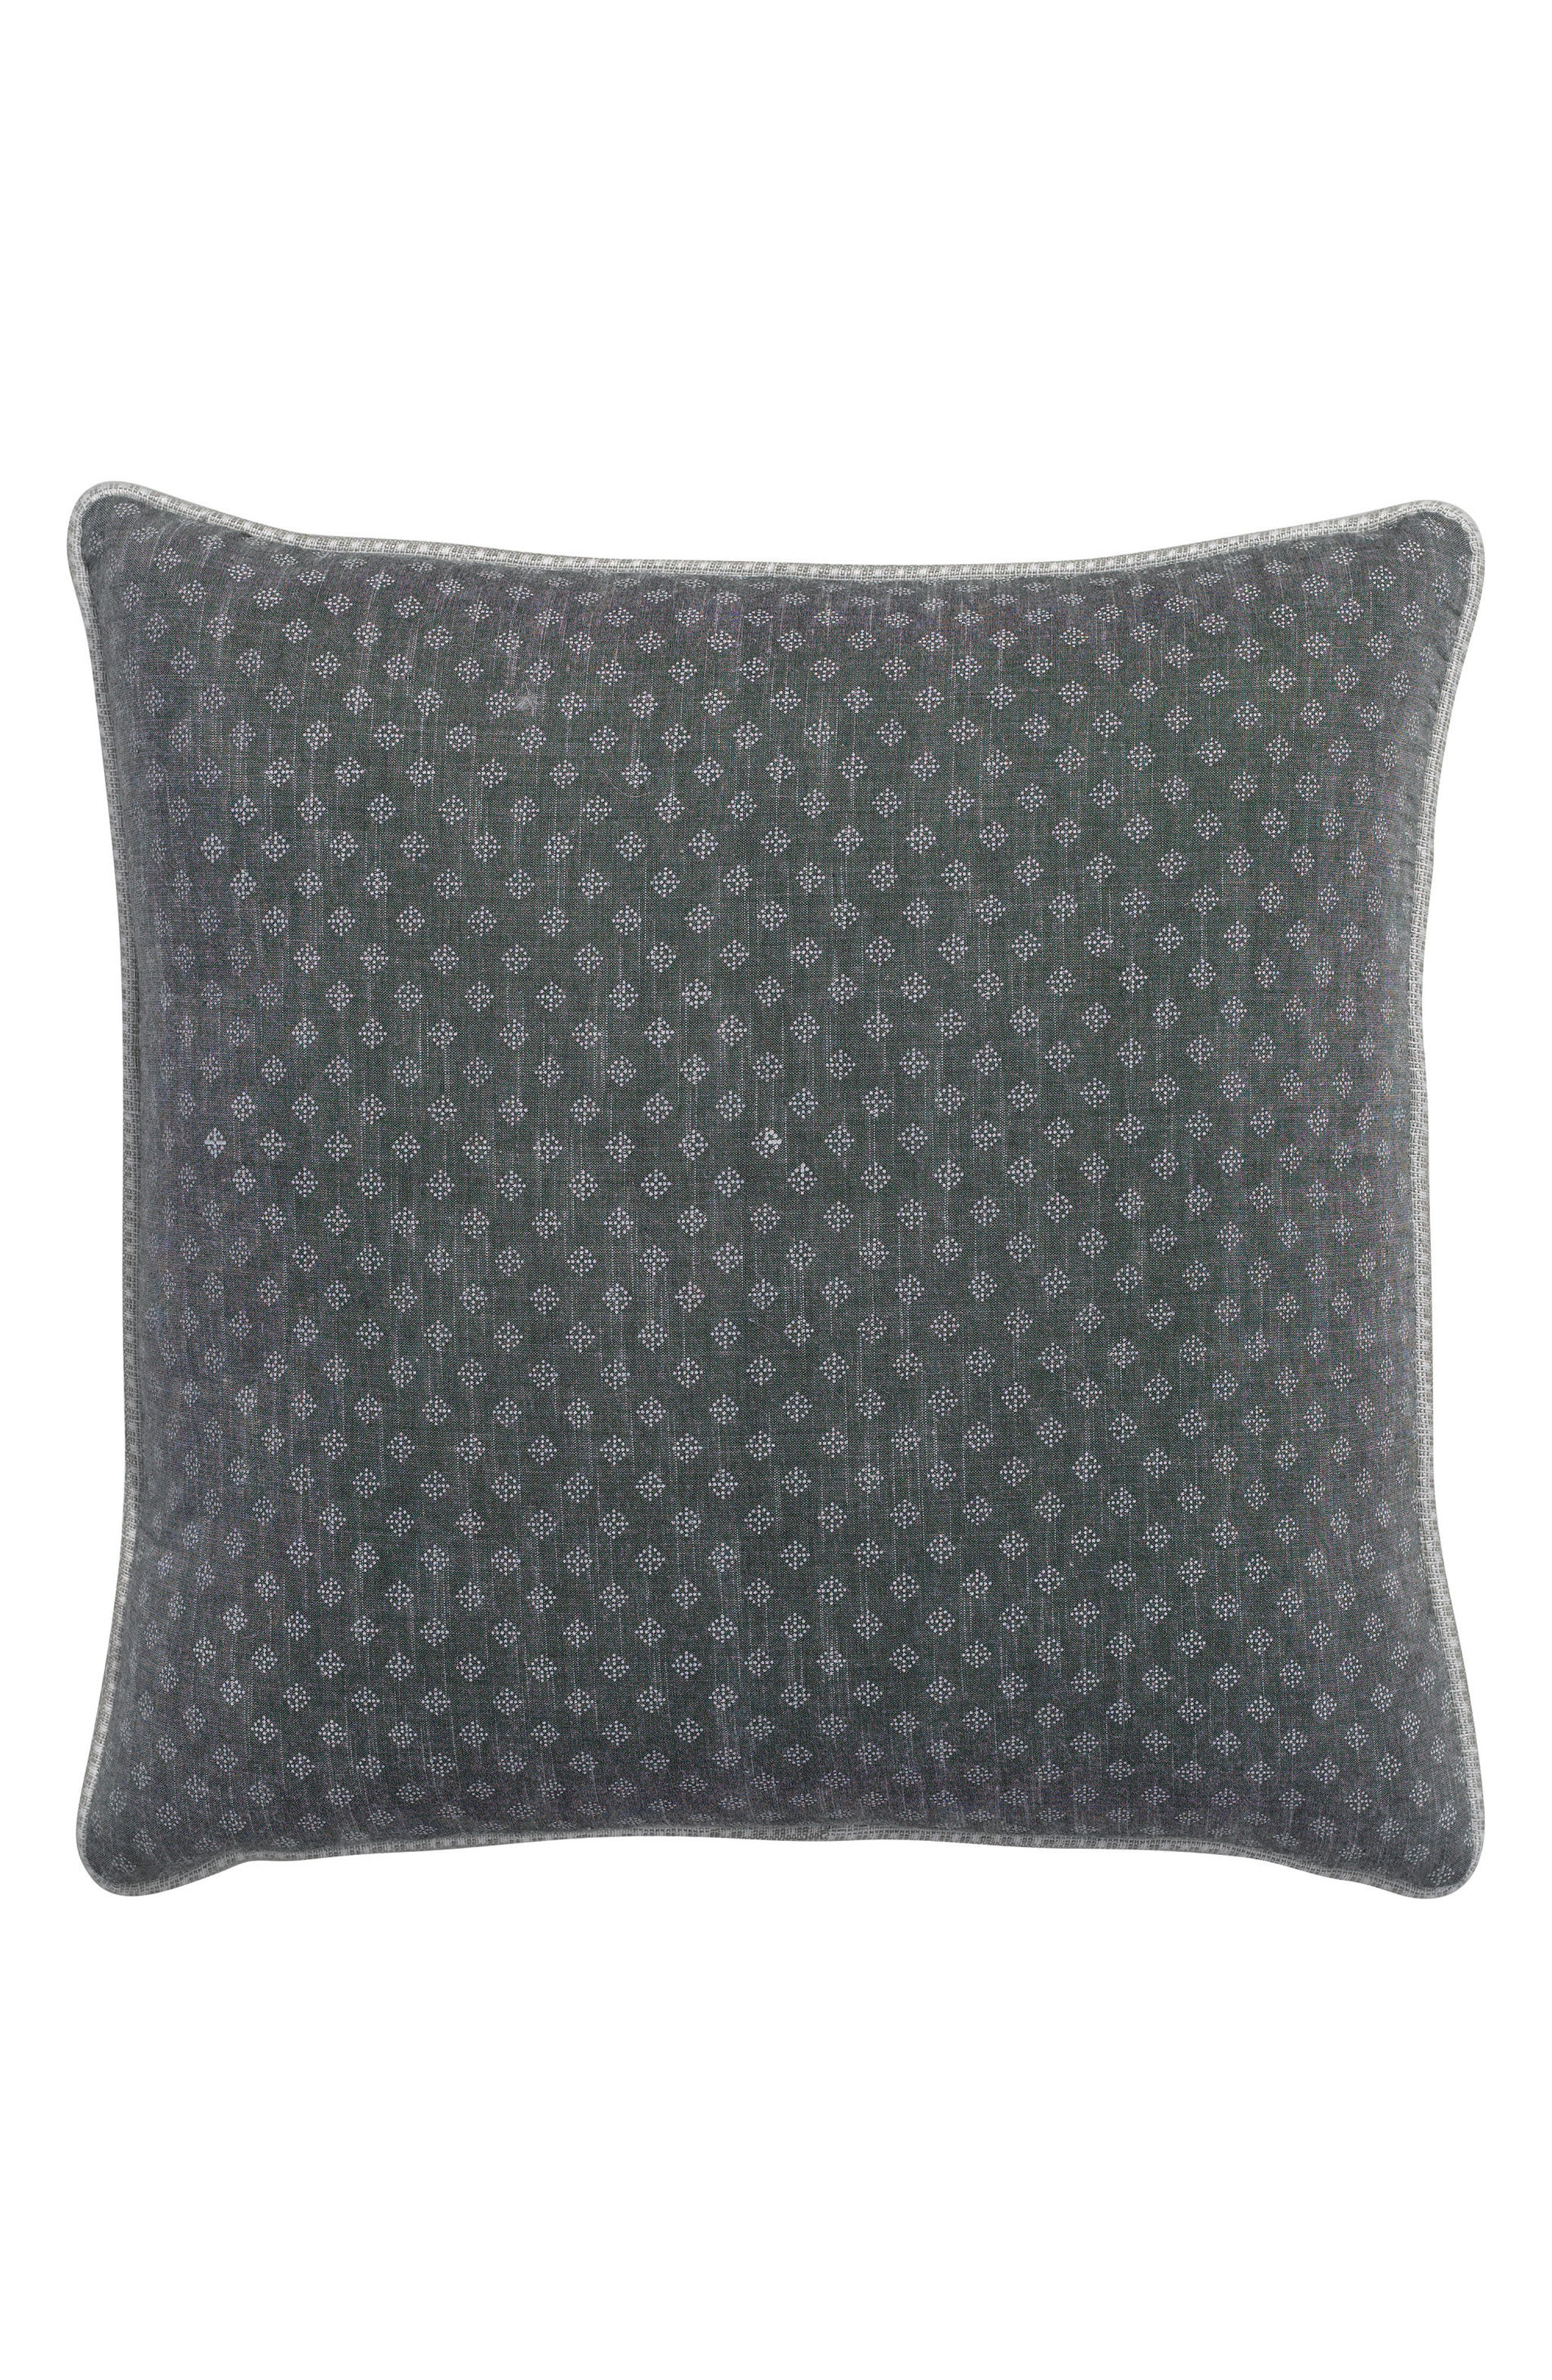 Park Ave Square Printed Dot Organic Cotton Accent Pillow,                         Main,                         color, 020